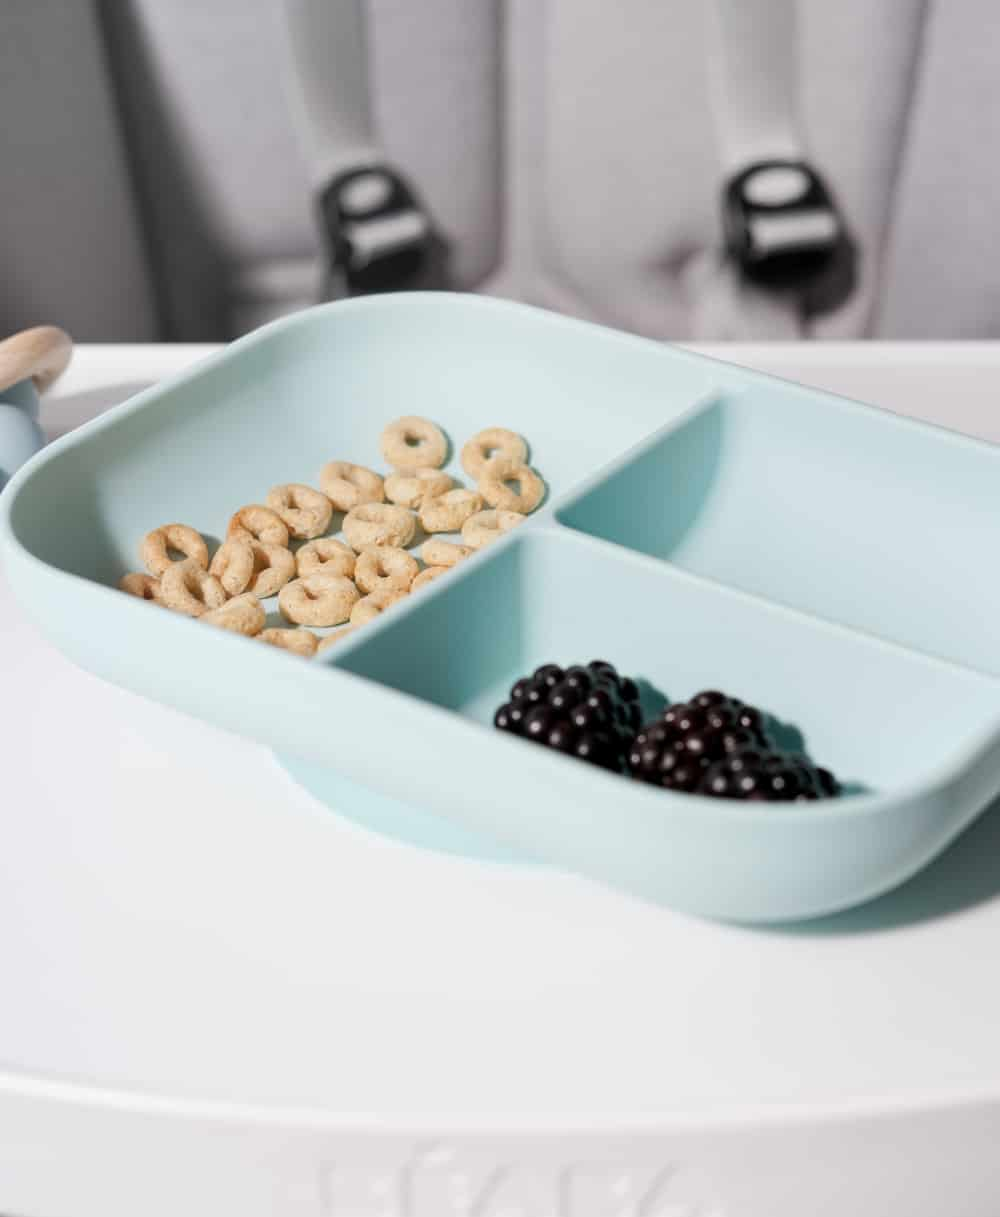 Beaba Divided Silicone Suction Plate in Rain with cheerios and blueberry